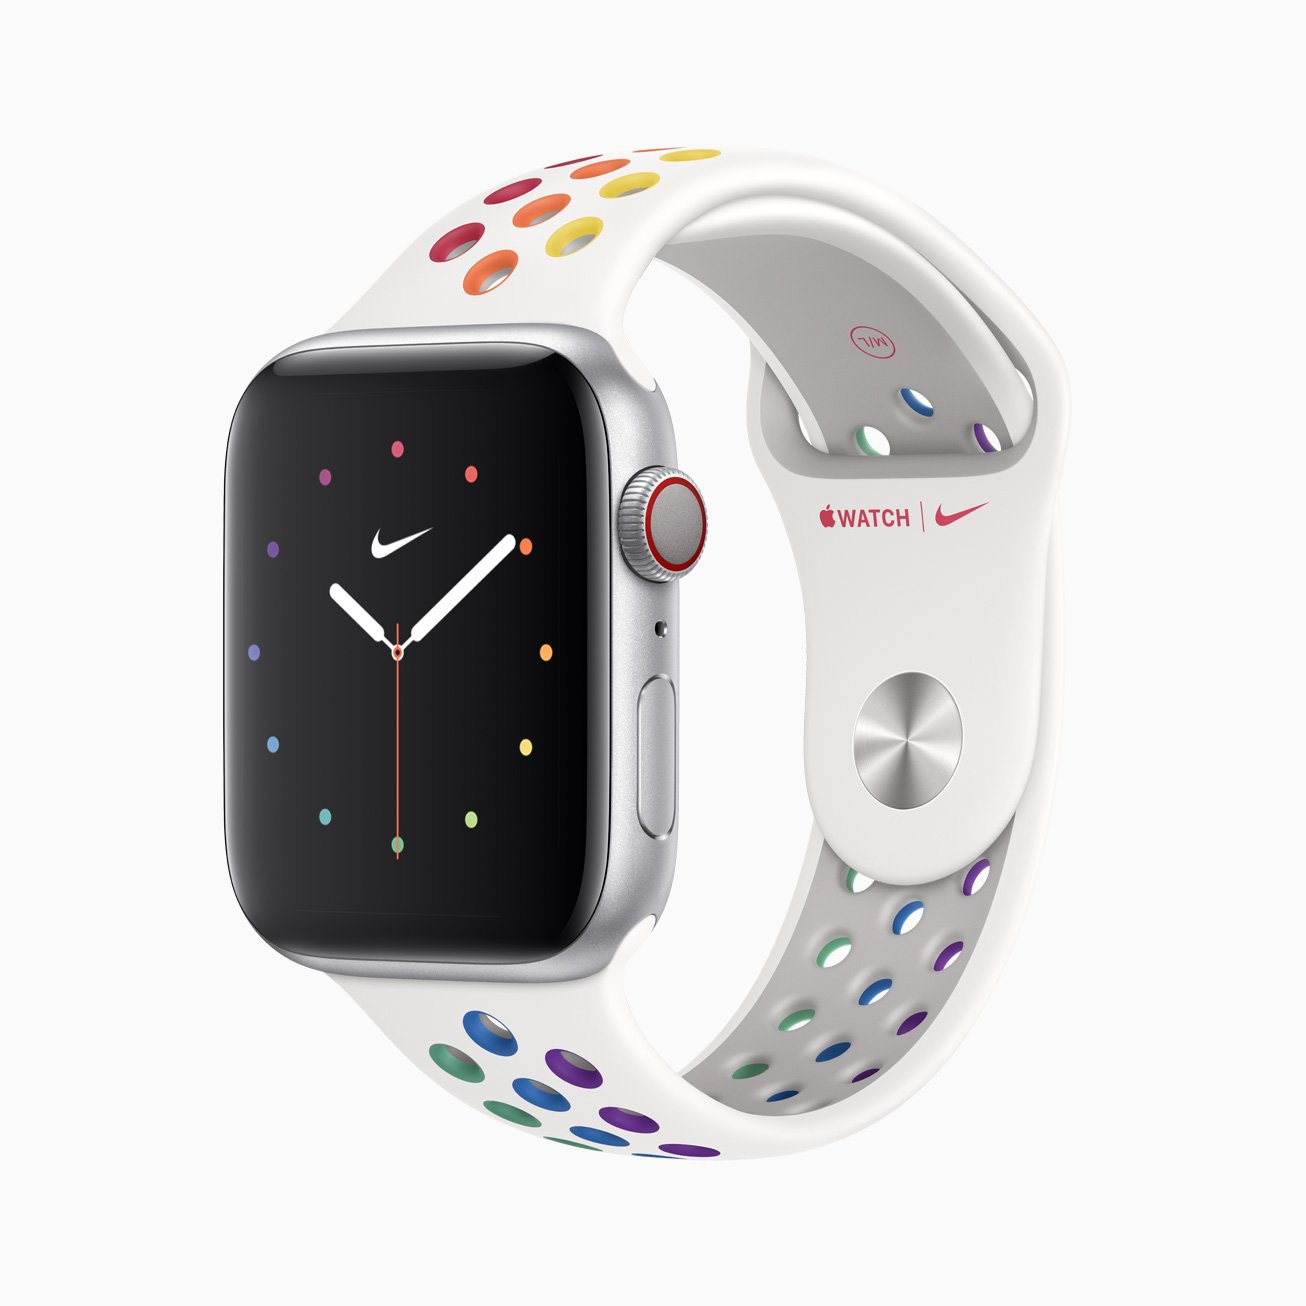 20 Apple_watch_s5-l-almsvr_nike-pride-ss20-watch-pride-edition_0518202